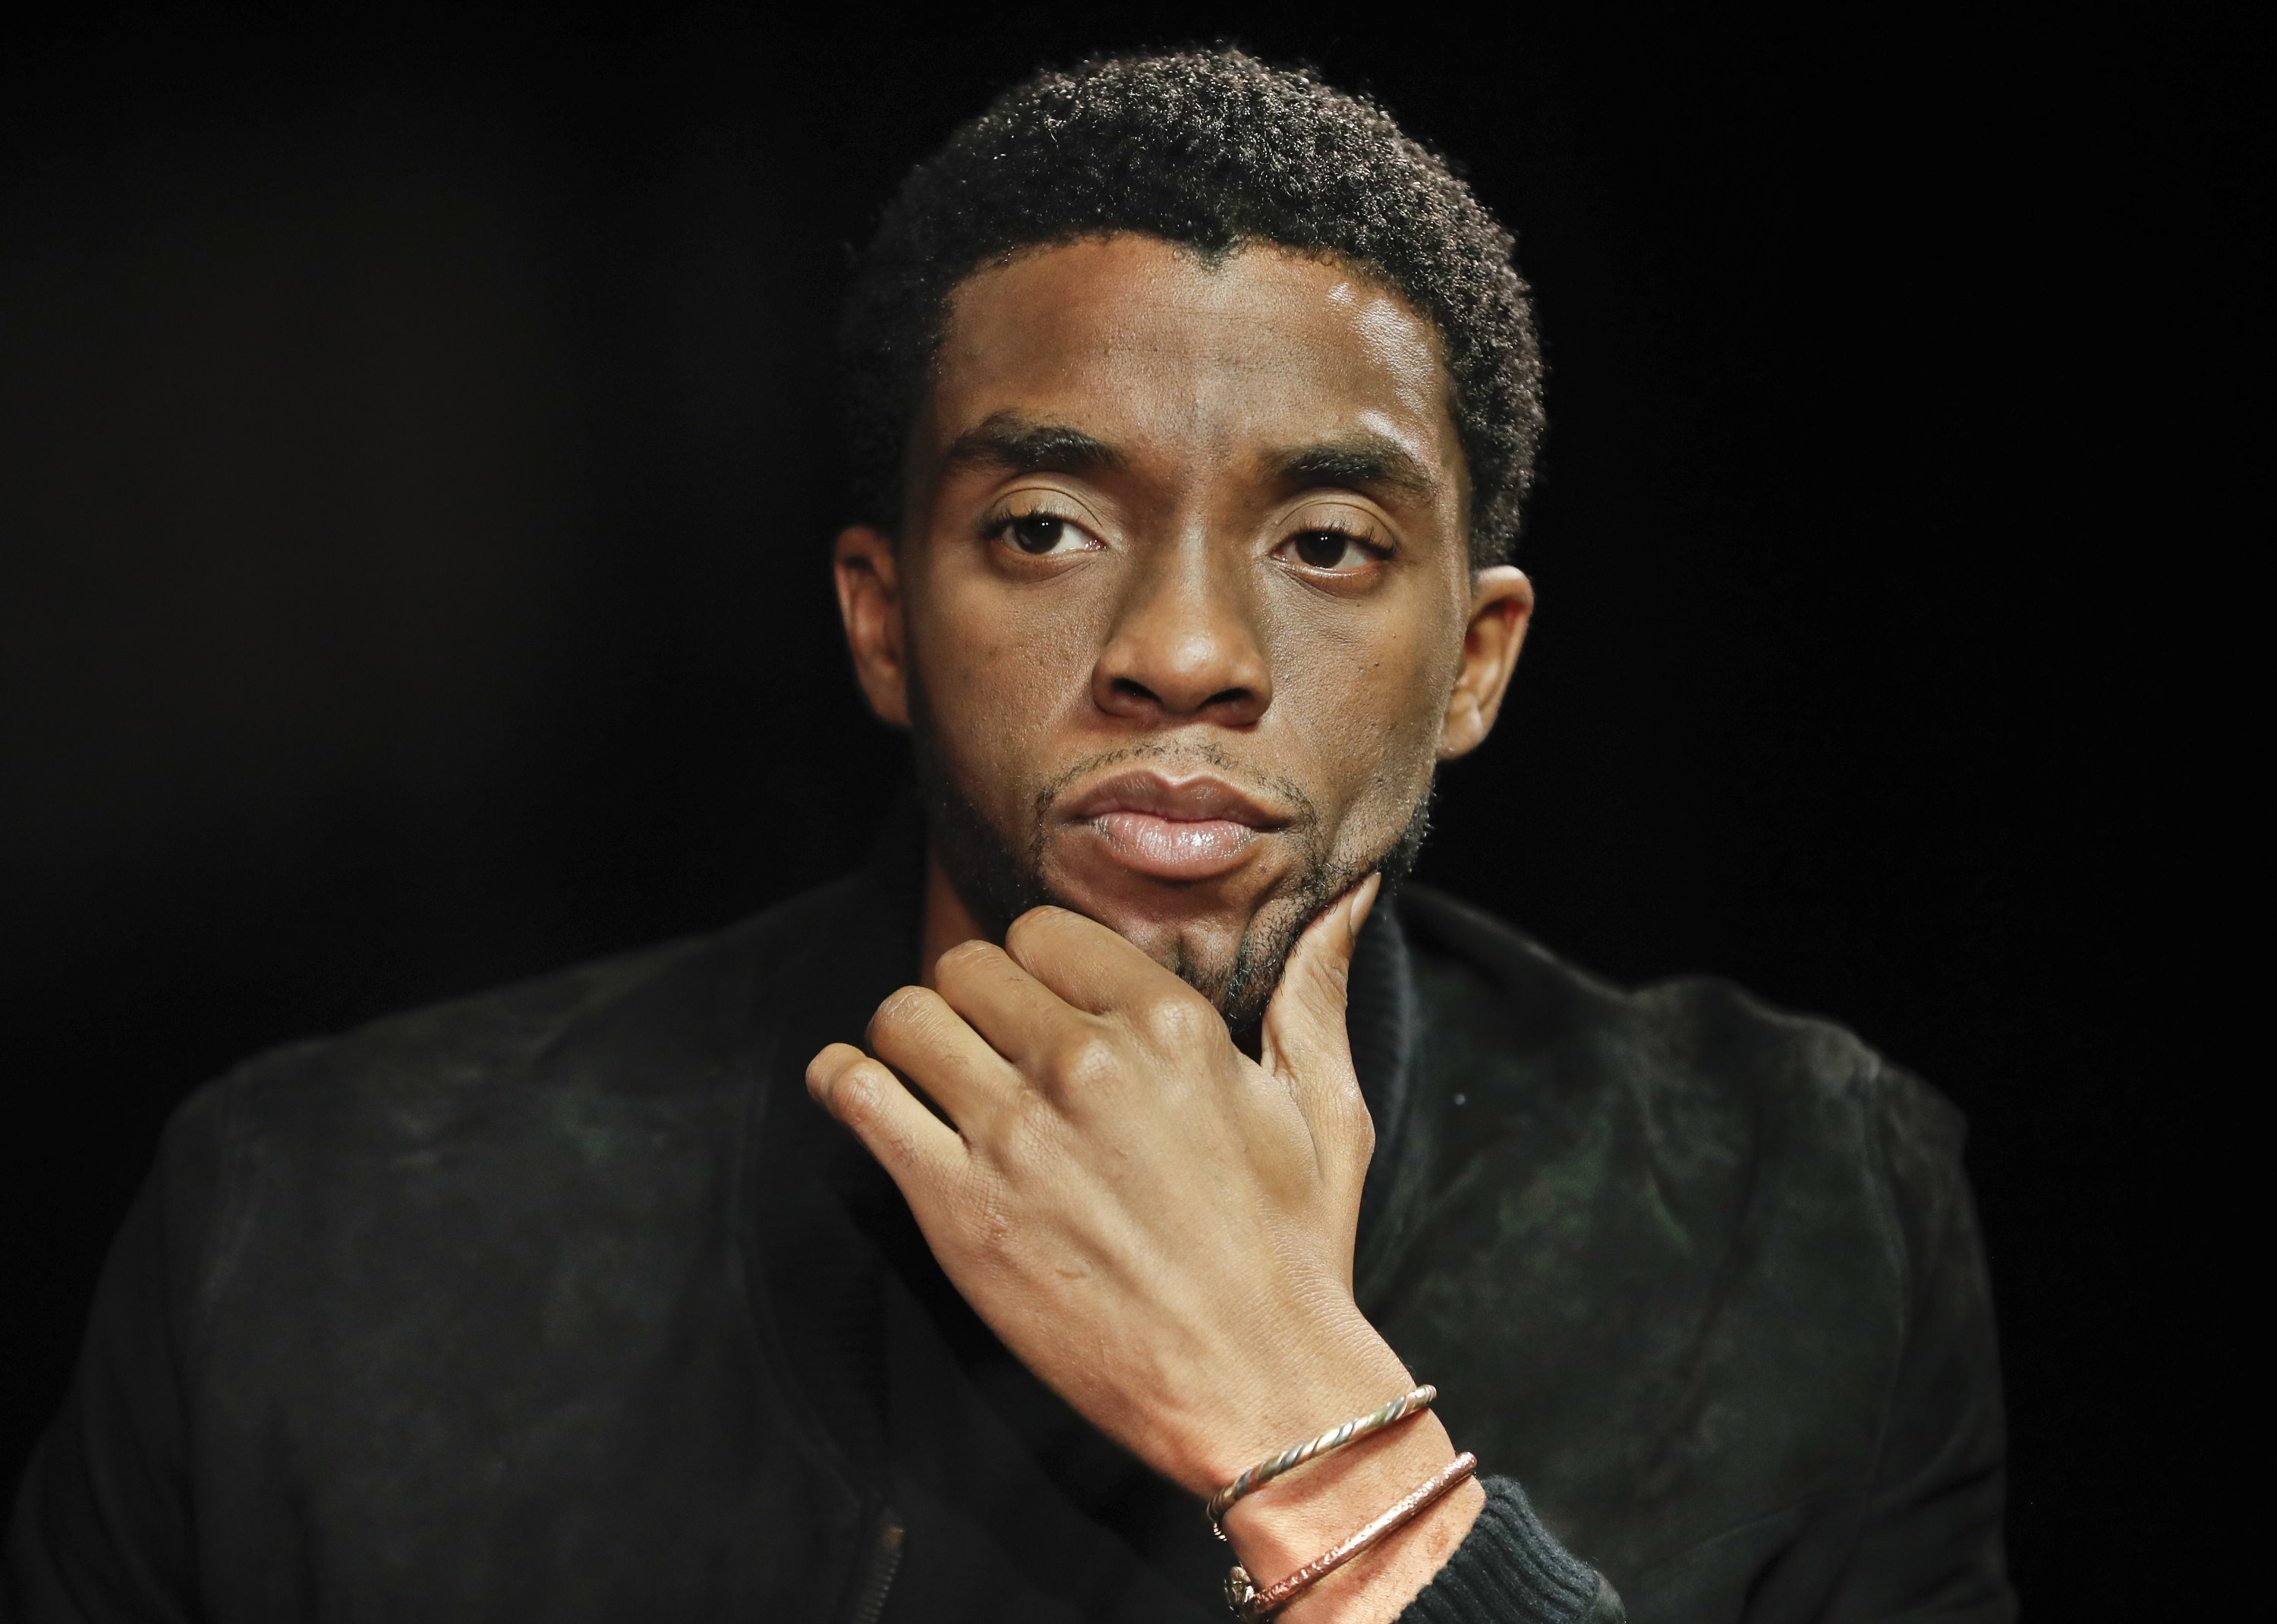 Actor Chadwick Boseman appears at an interview for the film 'Marshall,' in Washington, U.S., Sept. 21, 2017. (AP Photo)